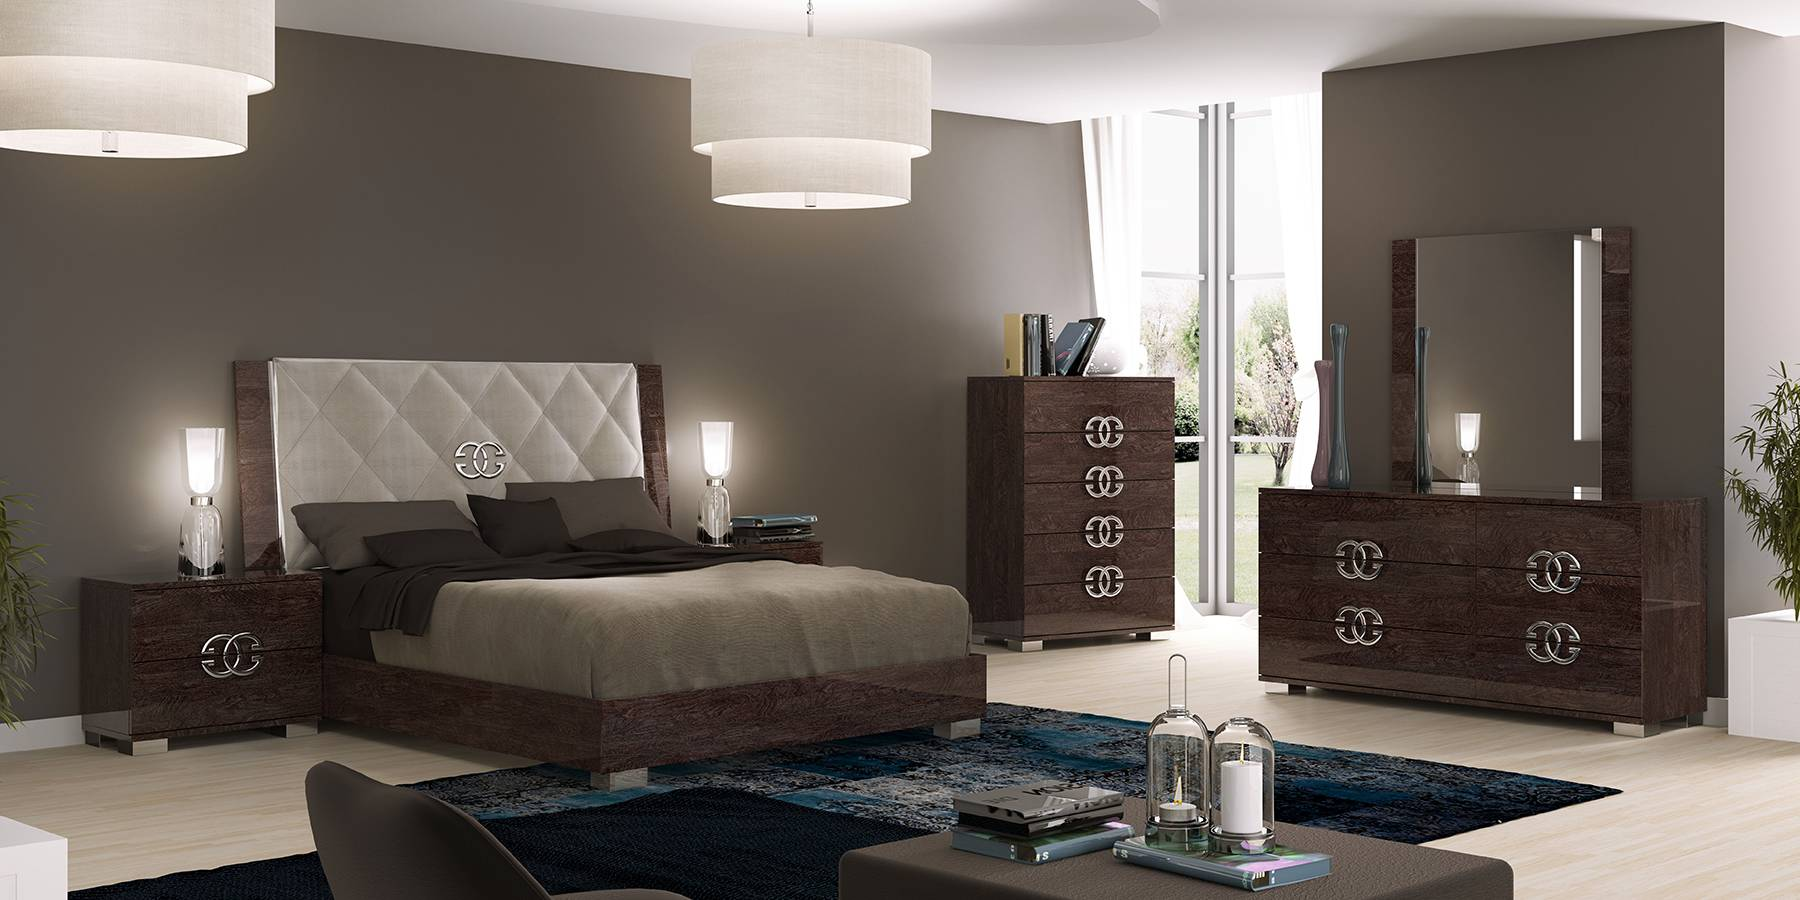 Made in italy elegant leather high end bedroom sets san High end bedroom design